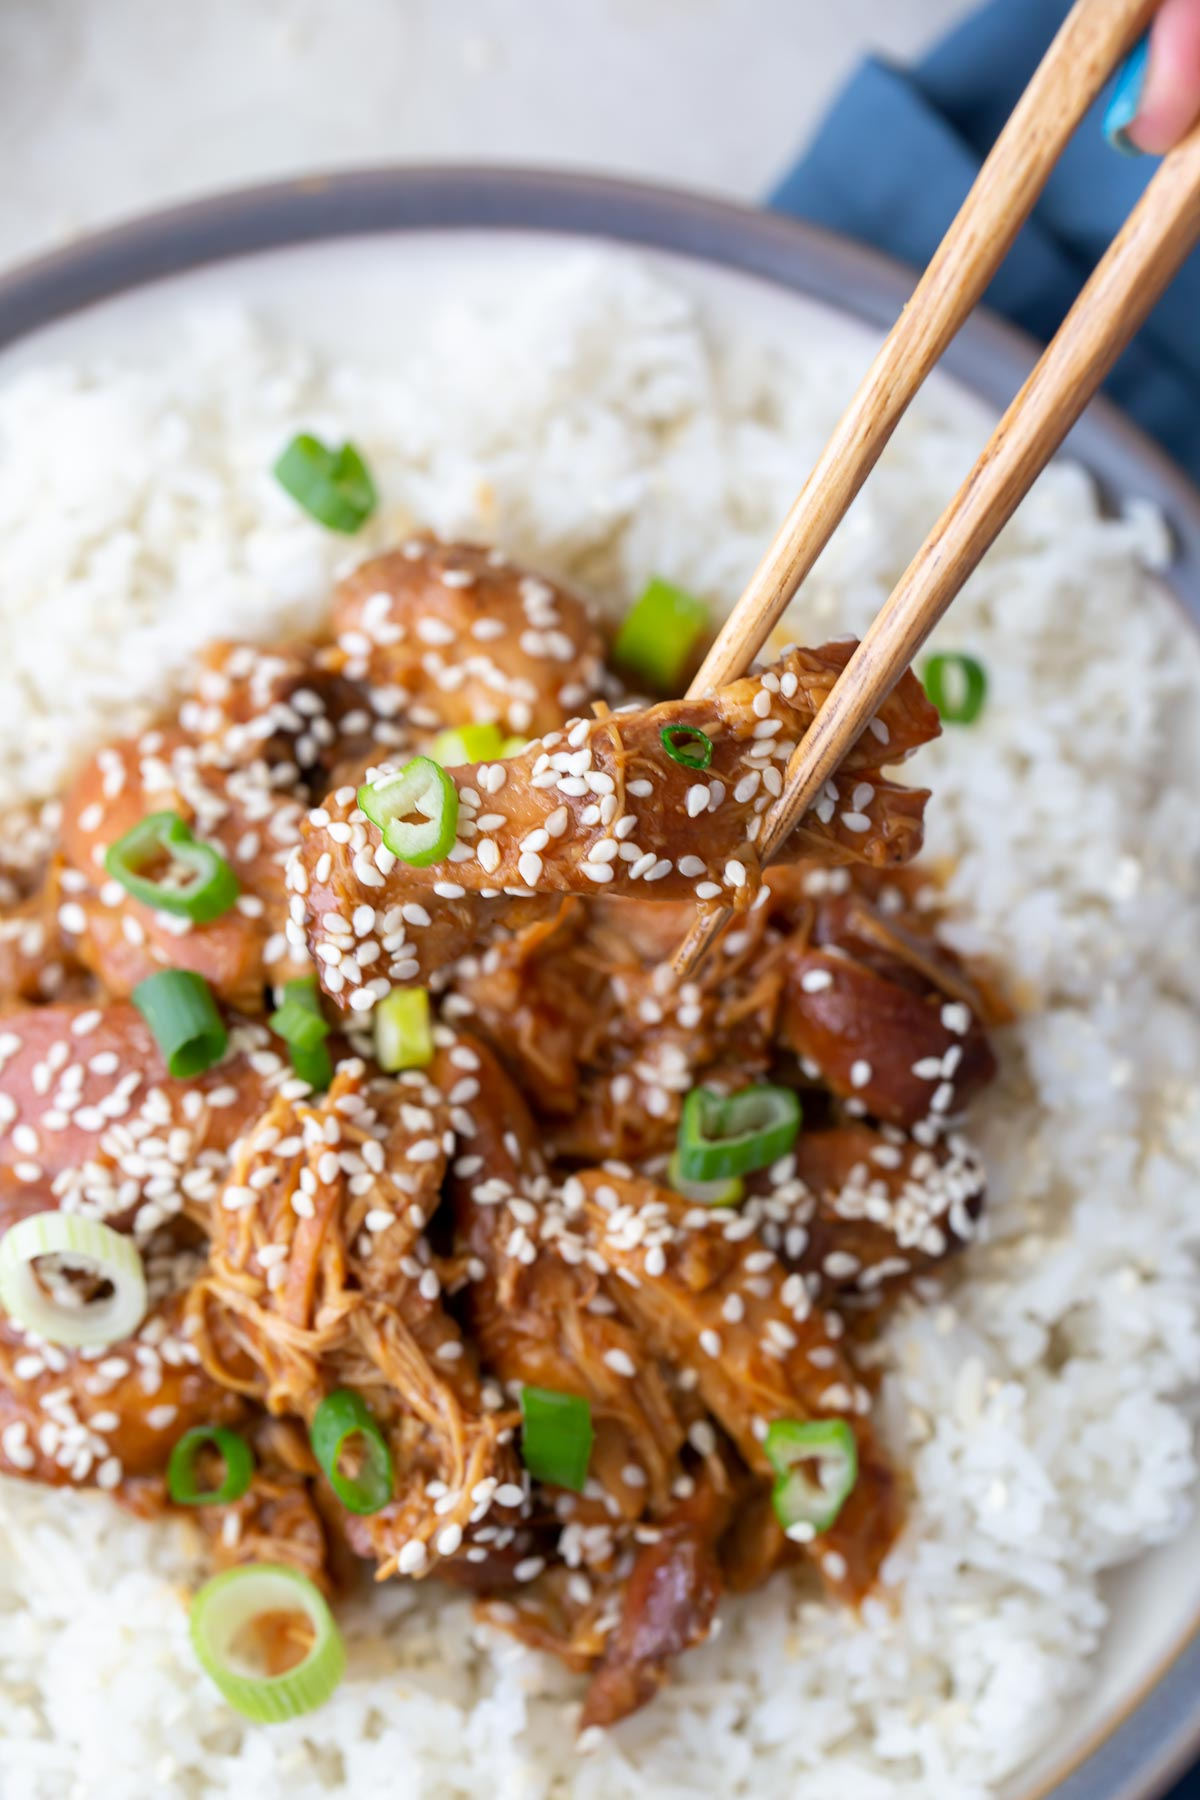 a bite of sesame chicken held with chopsticks over a plate of rice and sesame chicken